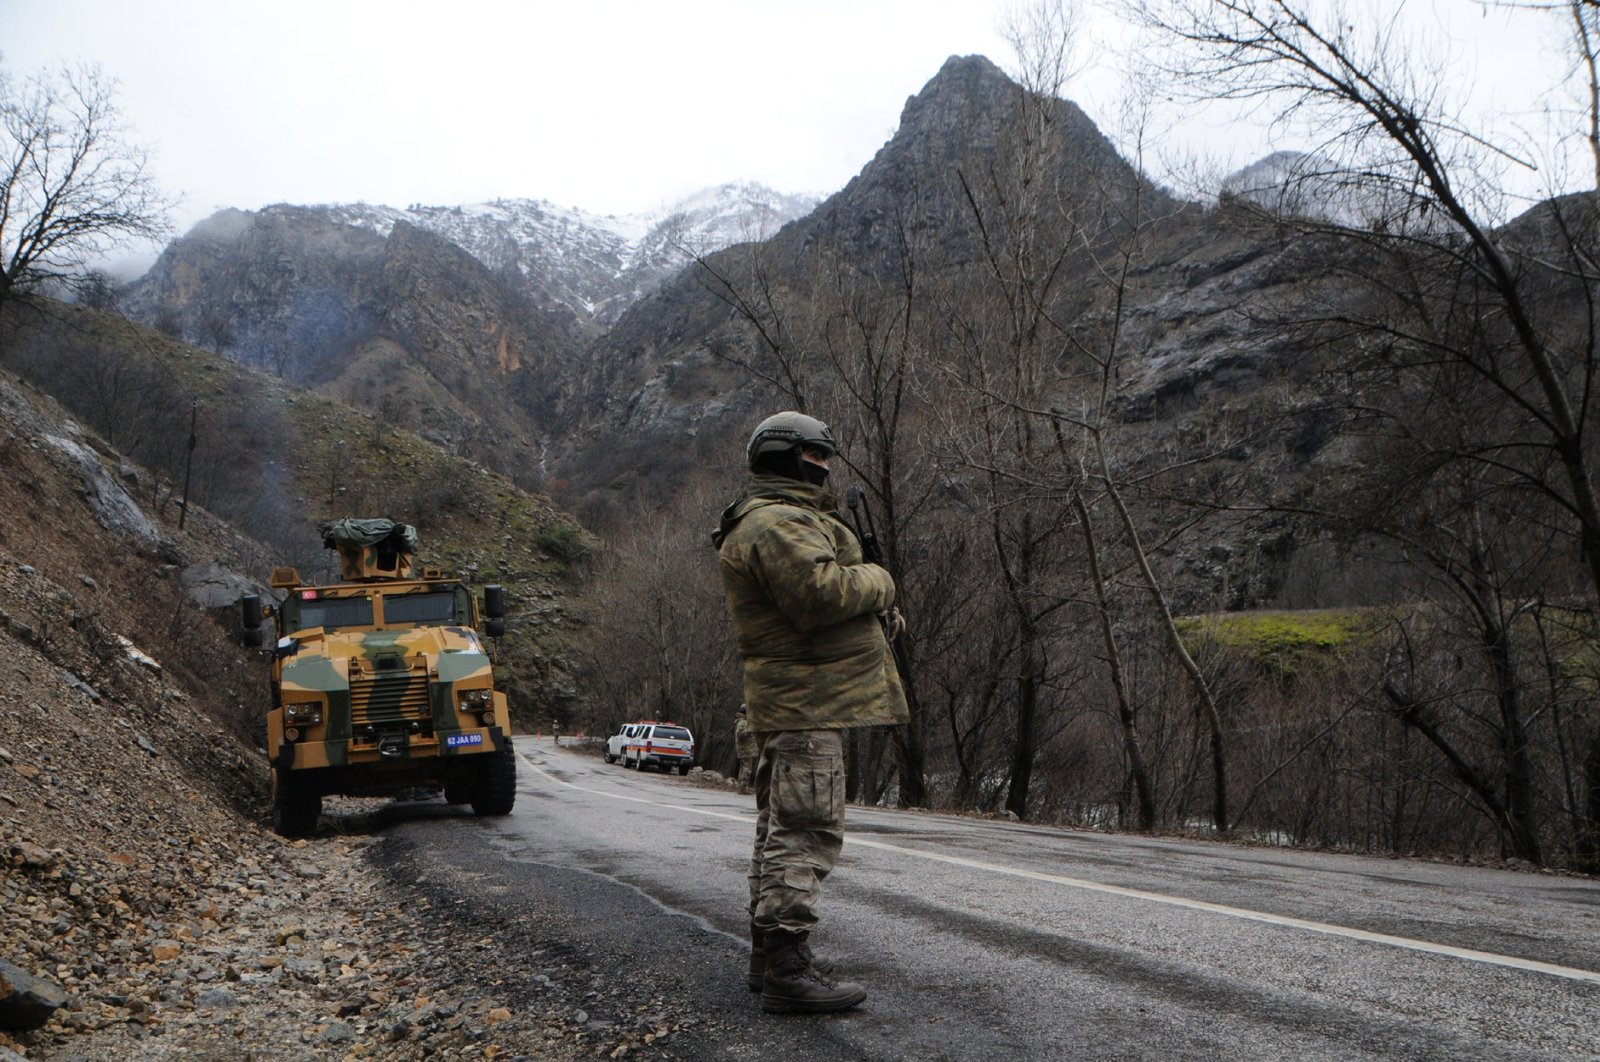 Turkish security forces take part in an anti-terror operation in Turkey's Tunceli province on Dec. 24, 2018 (DHA File Photo)